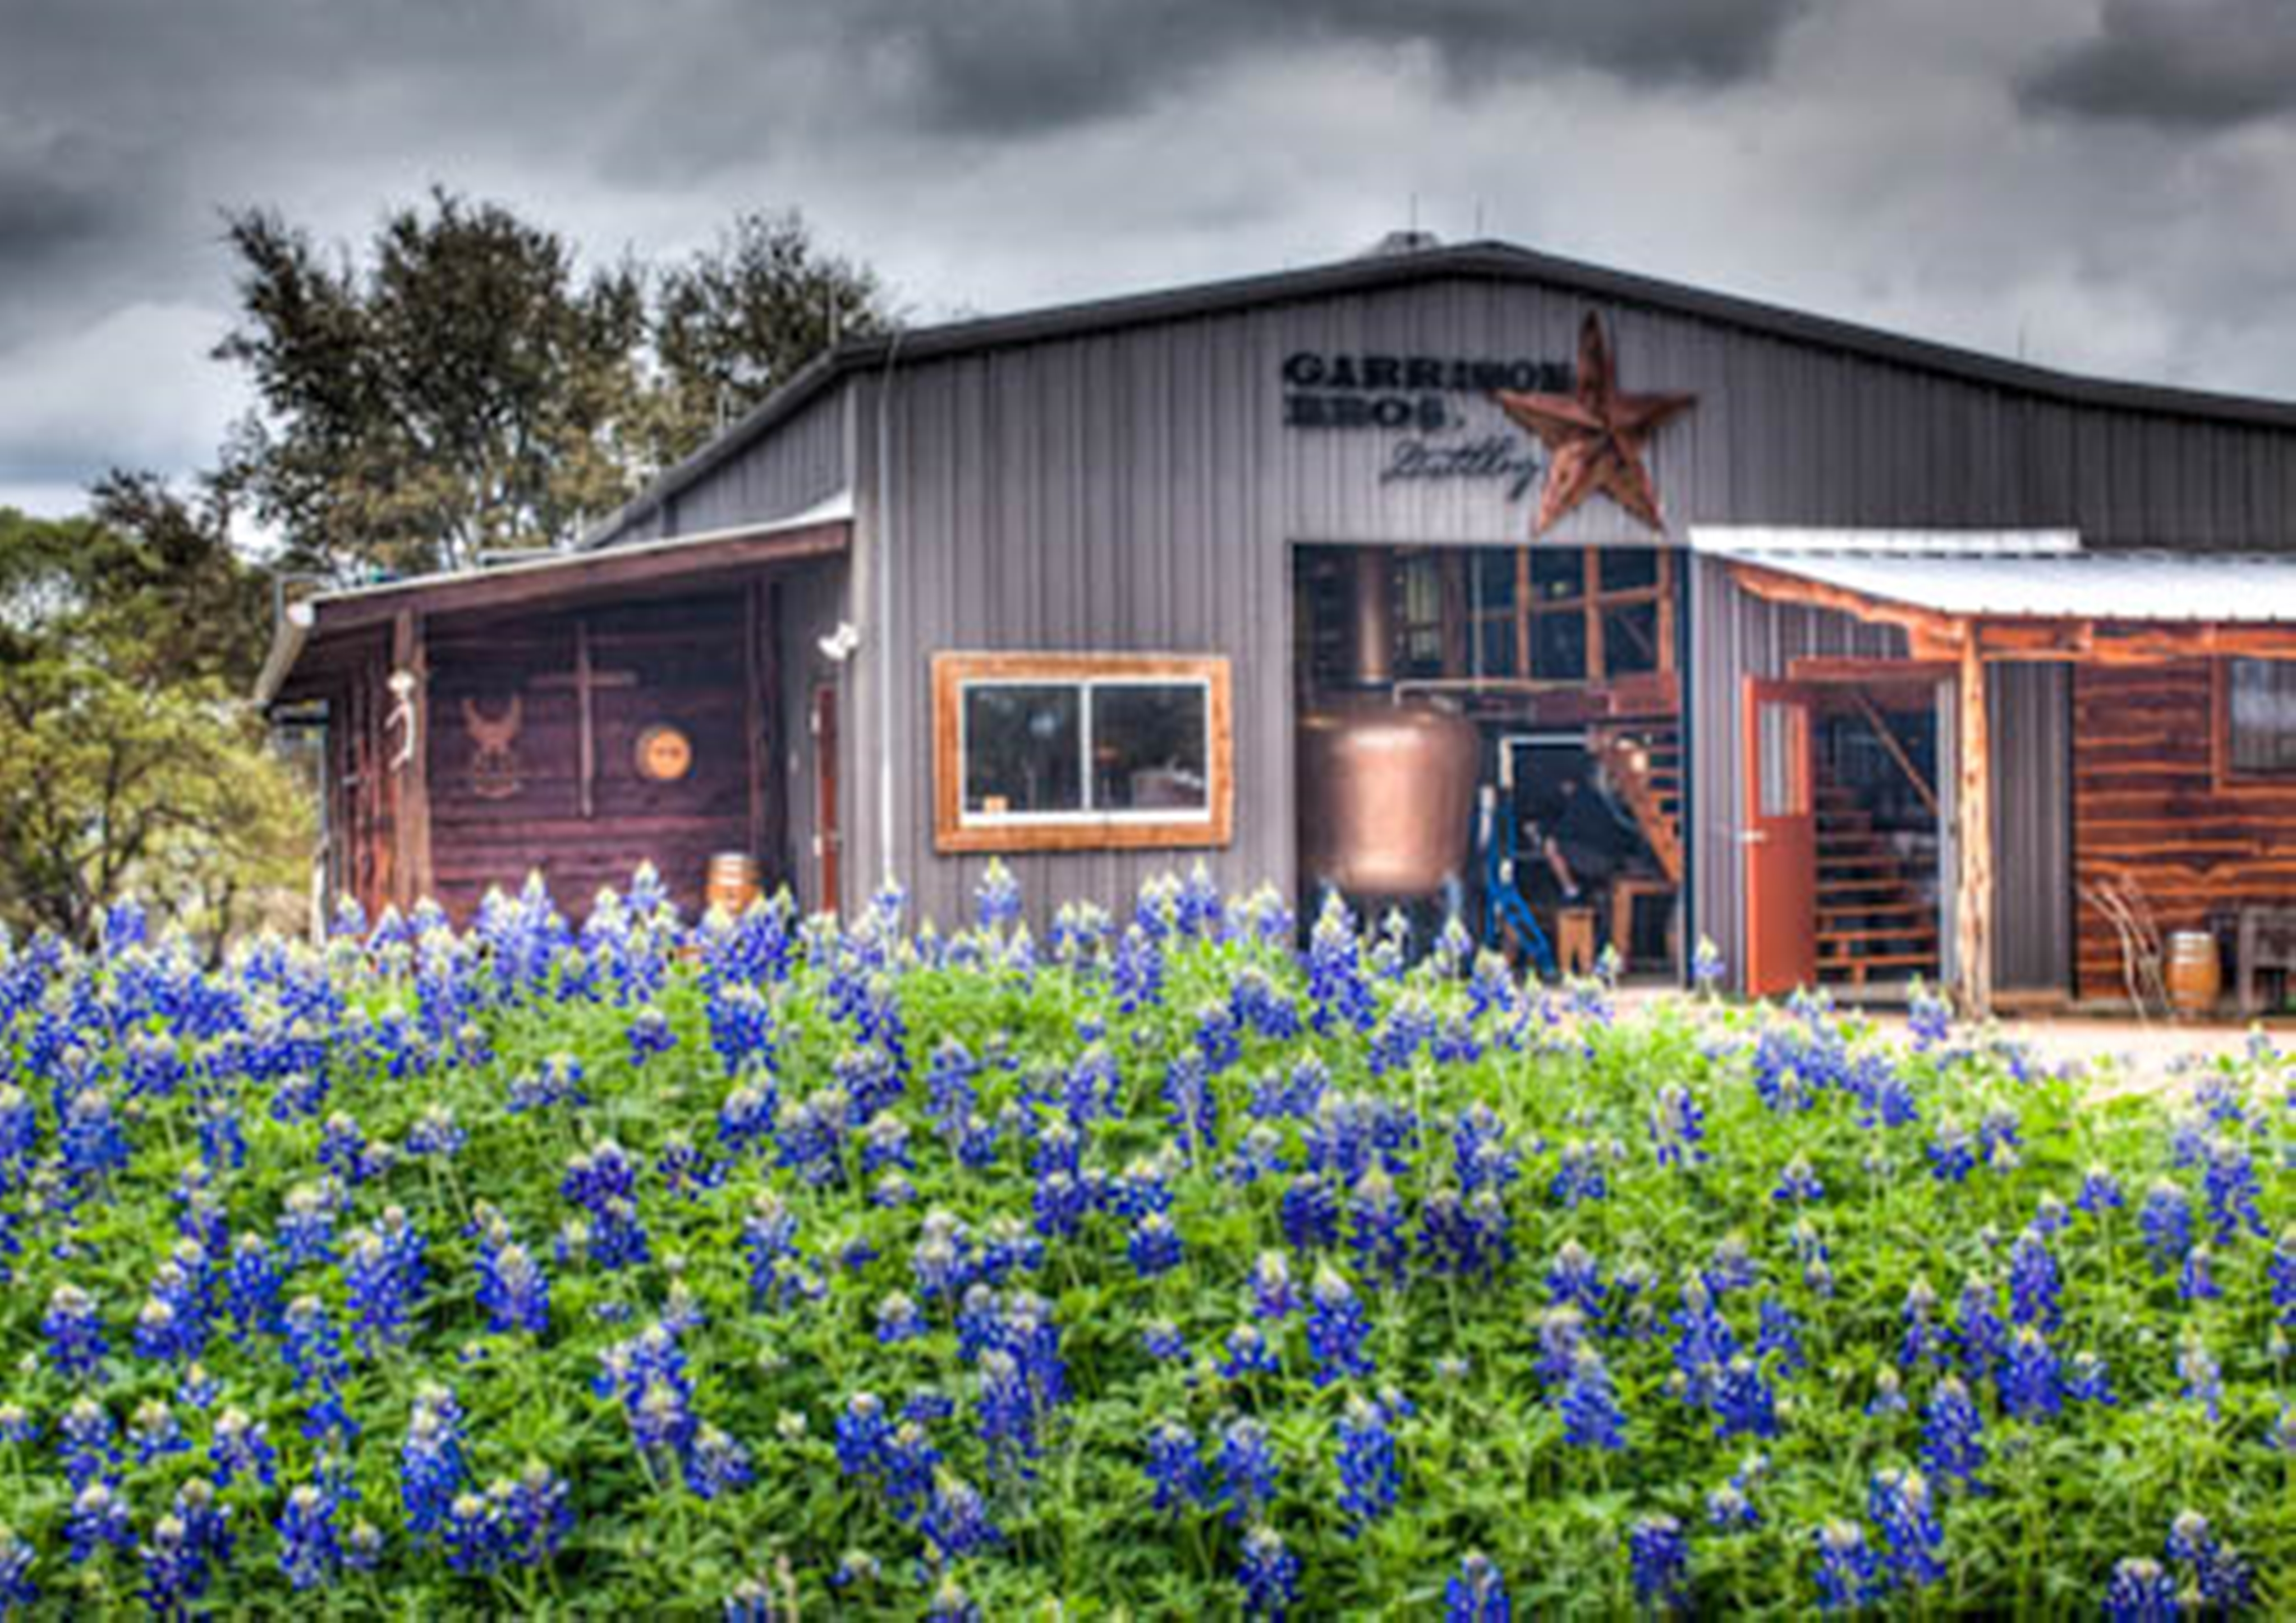 A view of the Garrison Brothers Distillery in Texas.